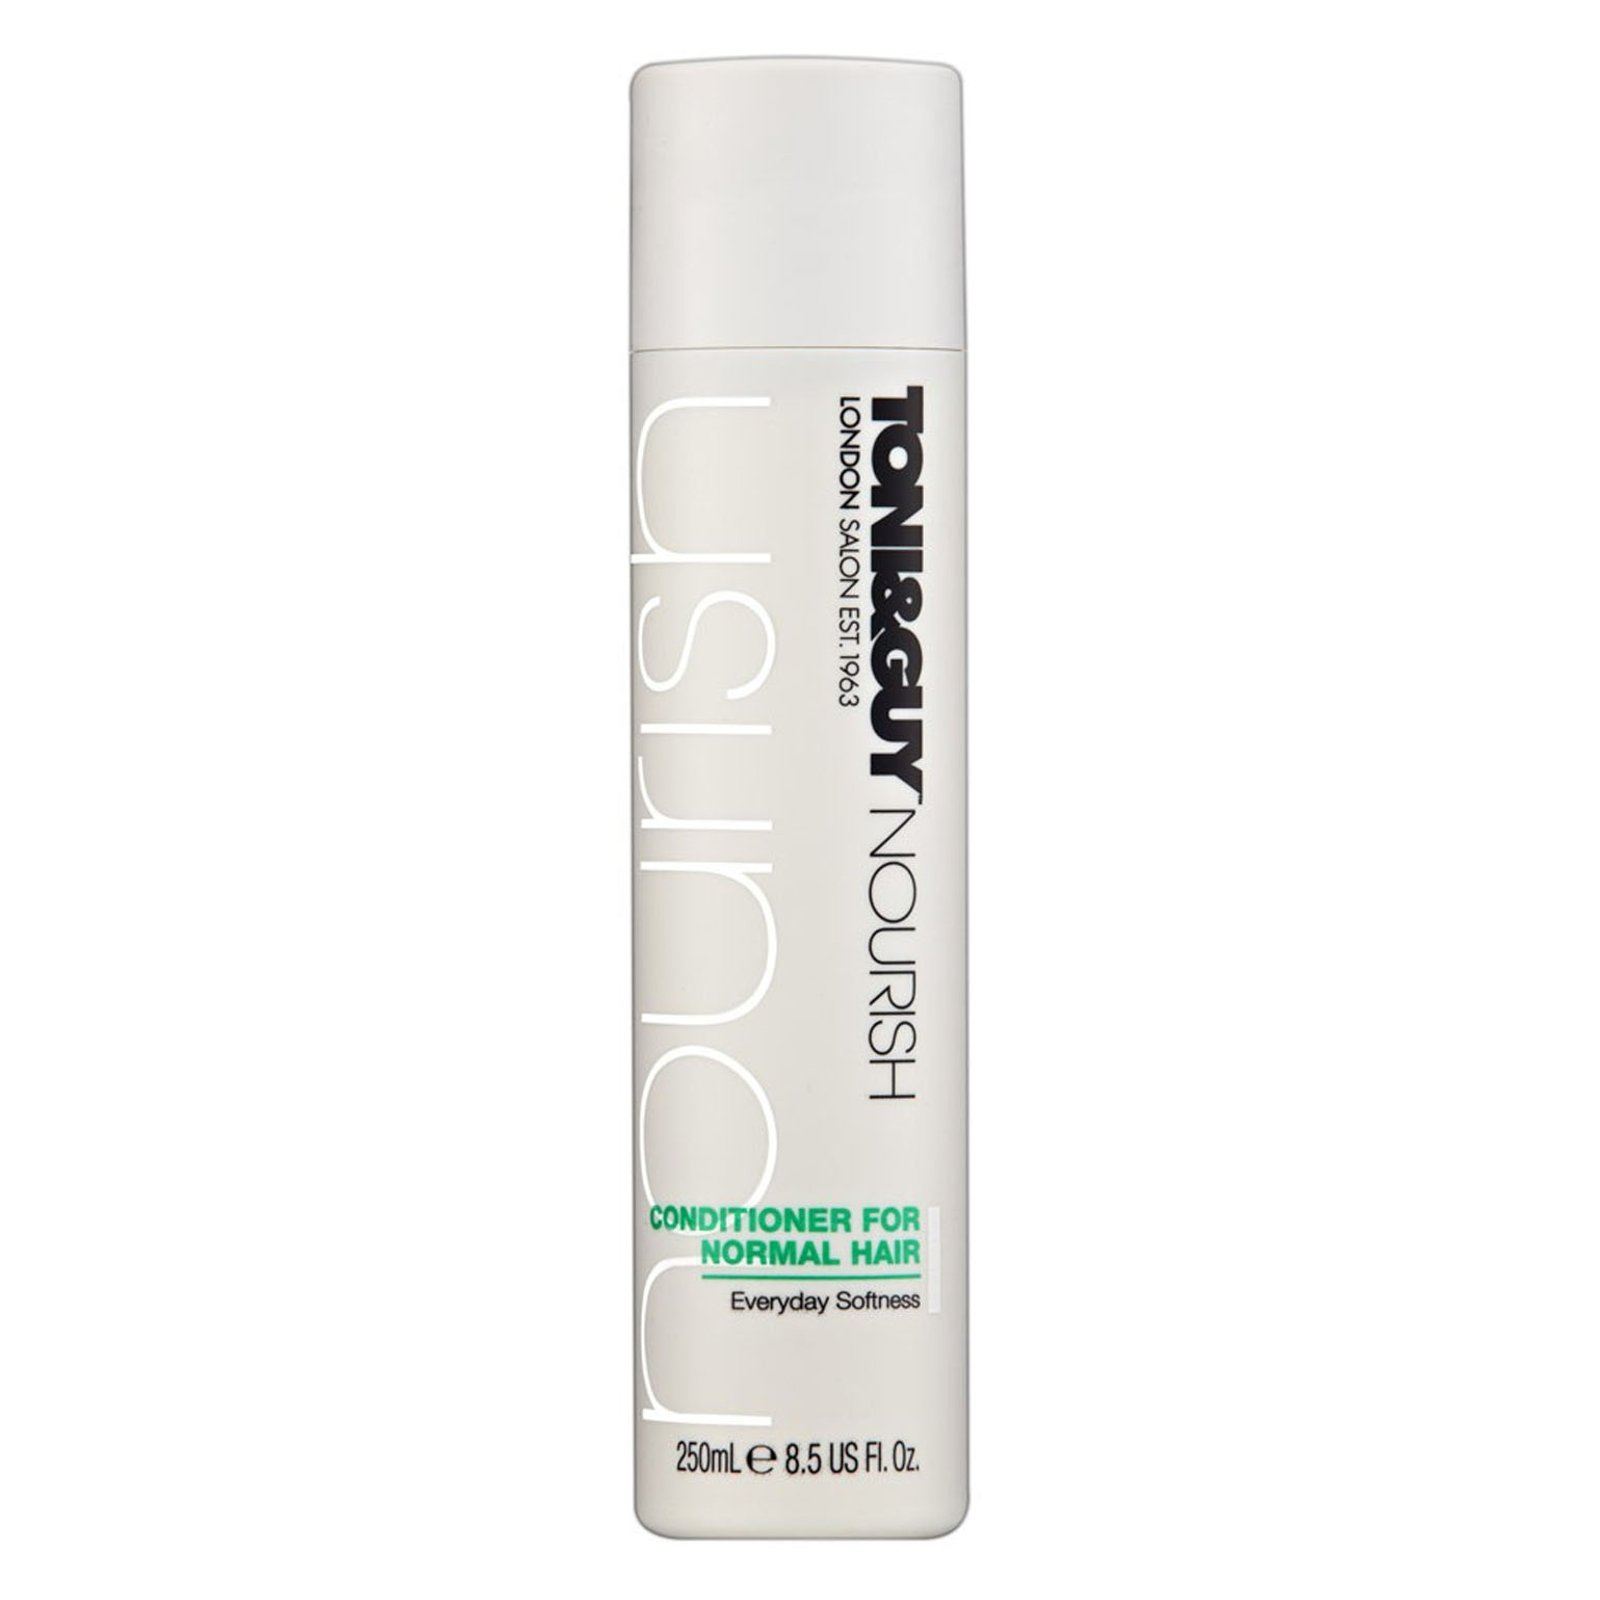 Buy Best Toniguy Nourish Conditioner For Normal Hair Amoreskin Forfifying Shampoo 250ml Online Grocery Shopping And Free Delivery Singapore